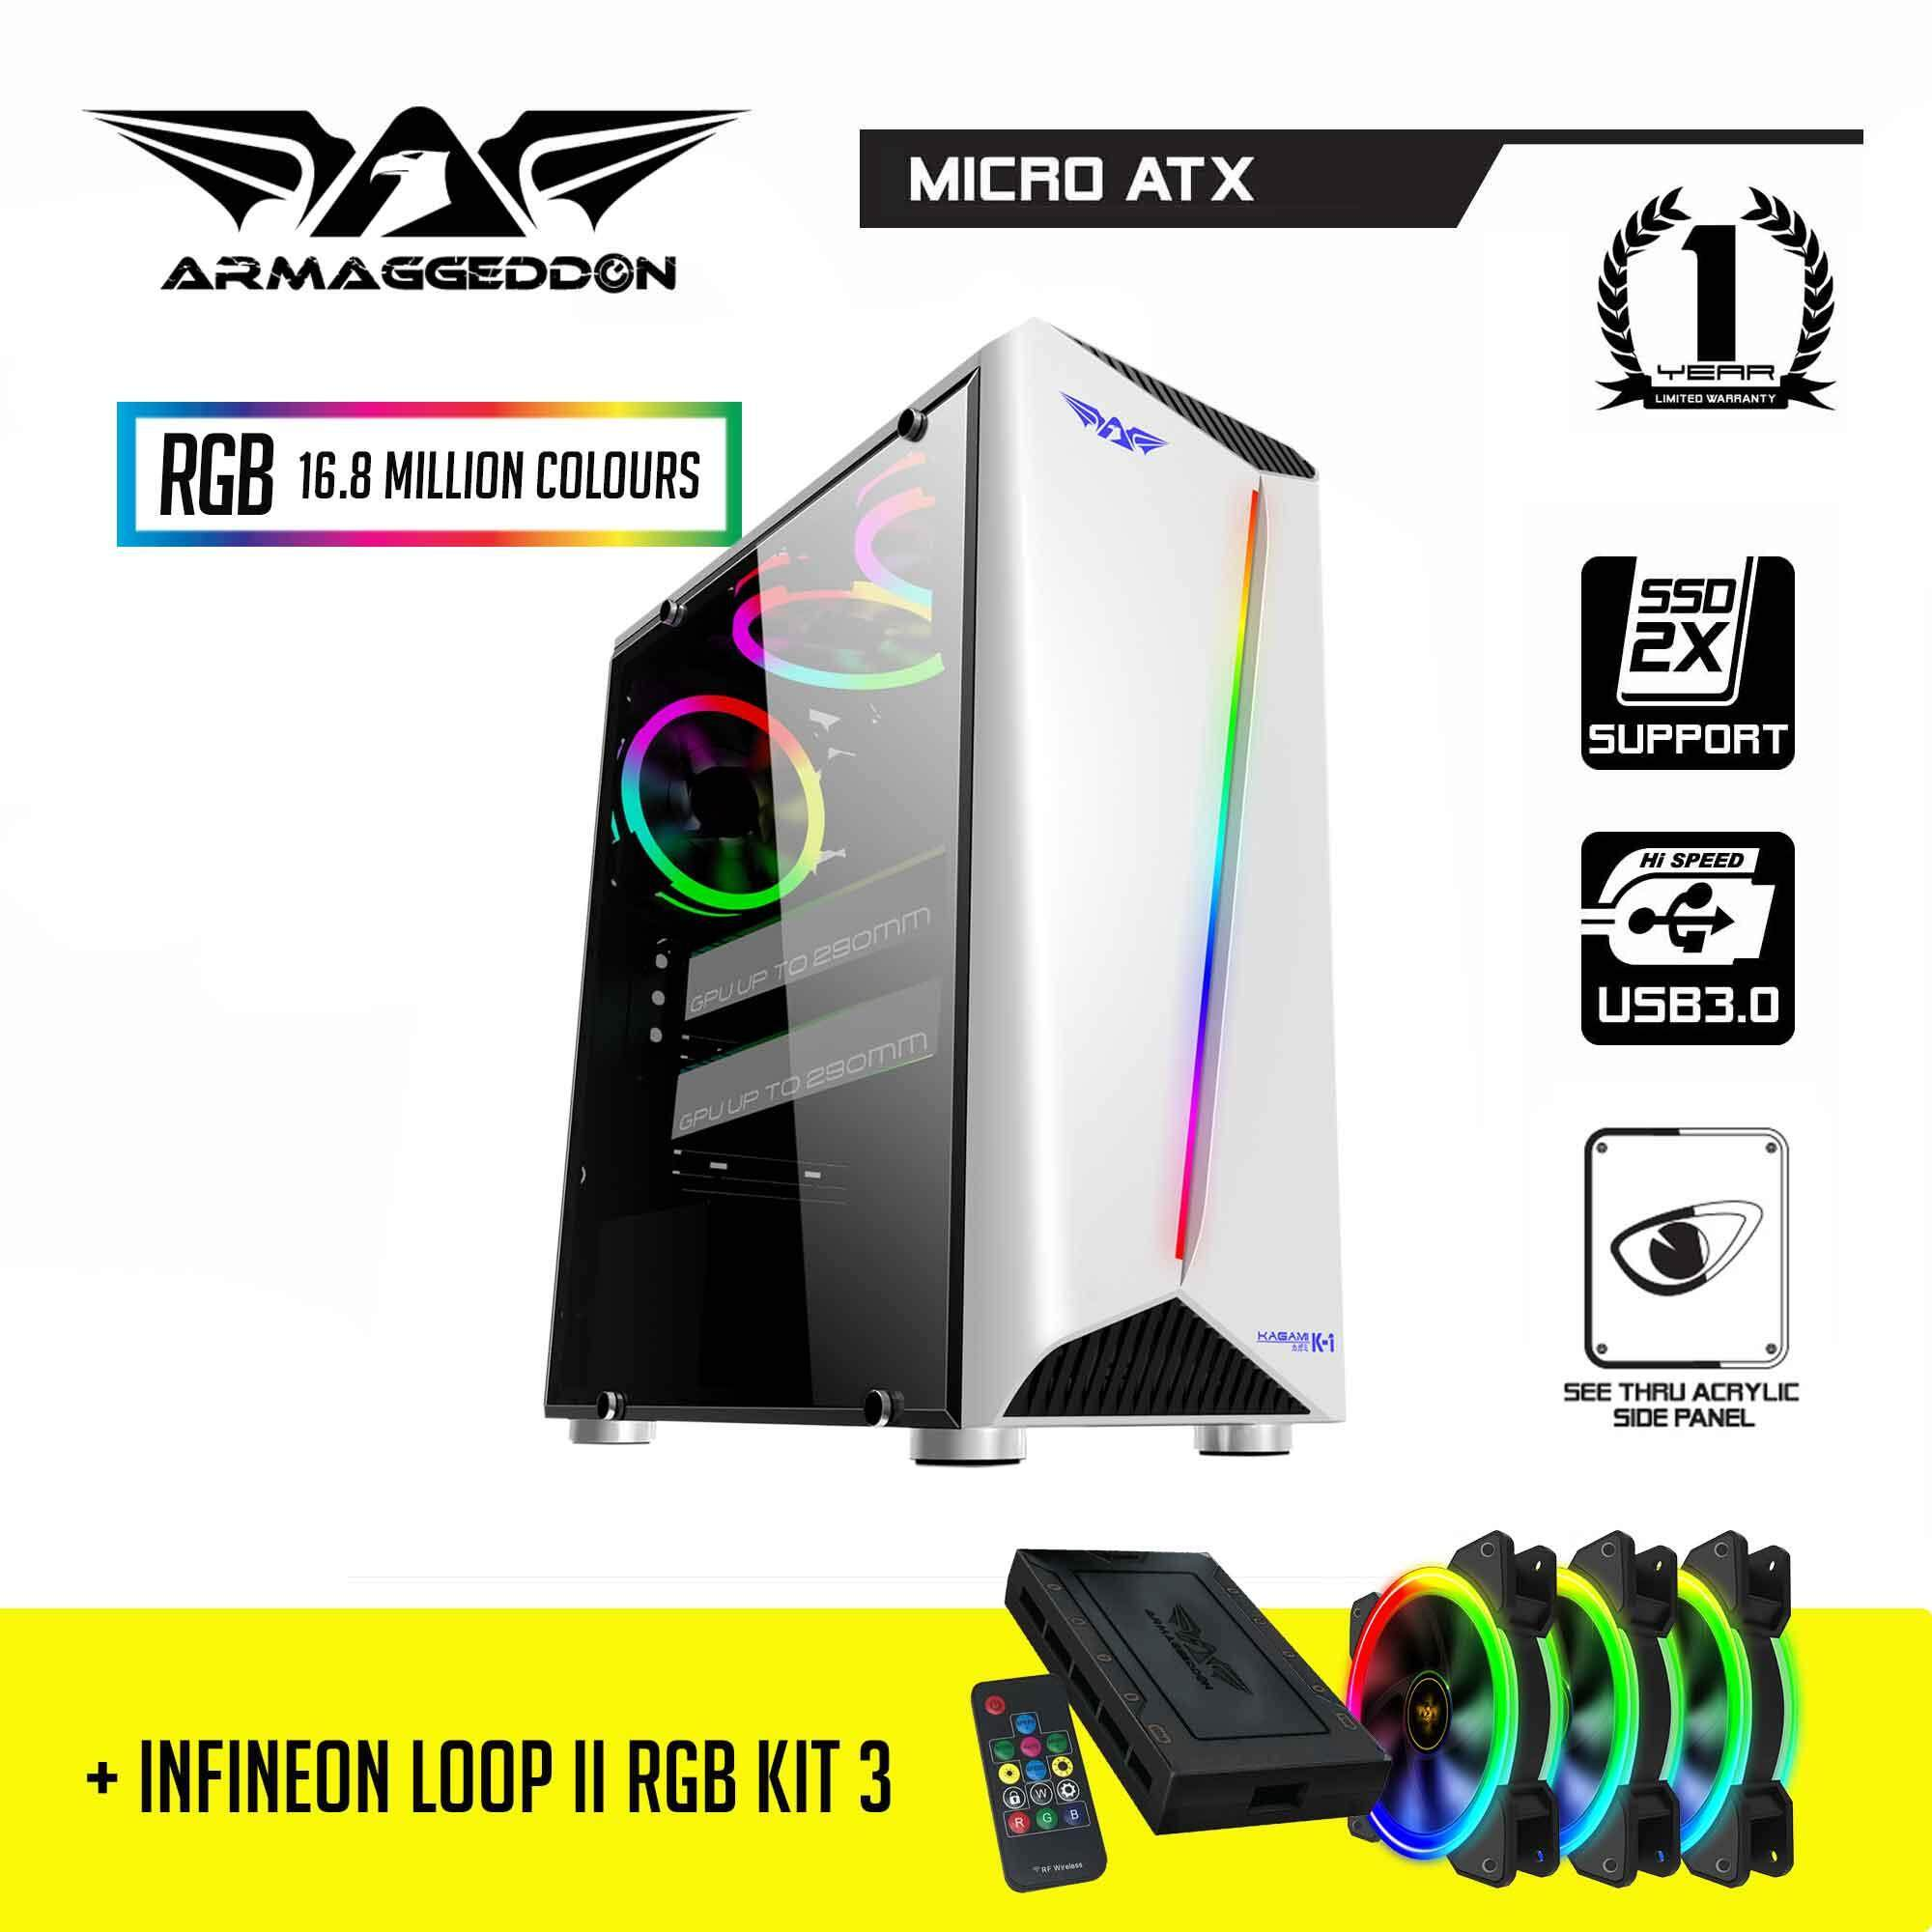 Armaggeddon KAGAMI K1 Gaming Case and Infineon Loop II RGB Kit (3 x RGB Fan with FX Controller) Malaysia